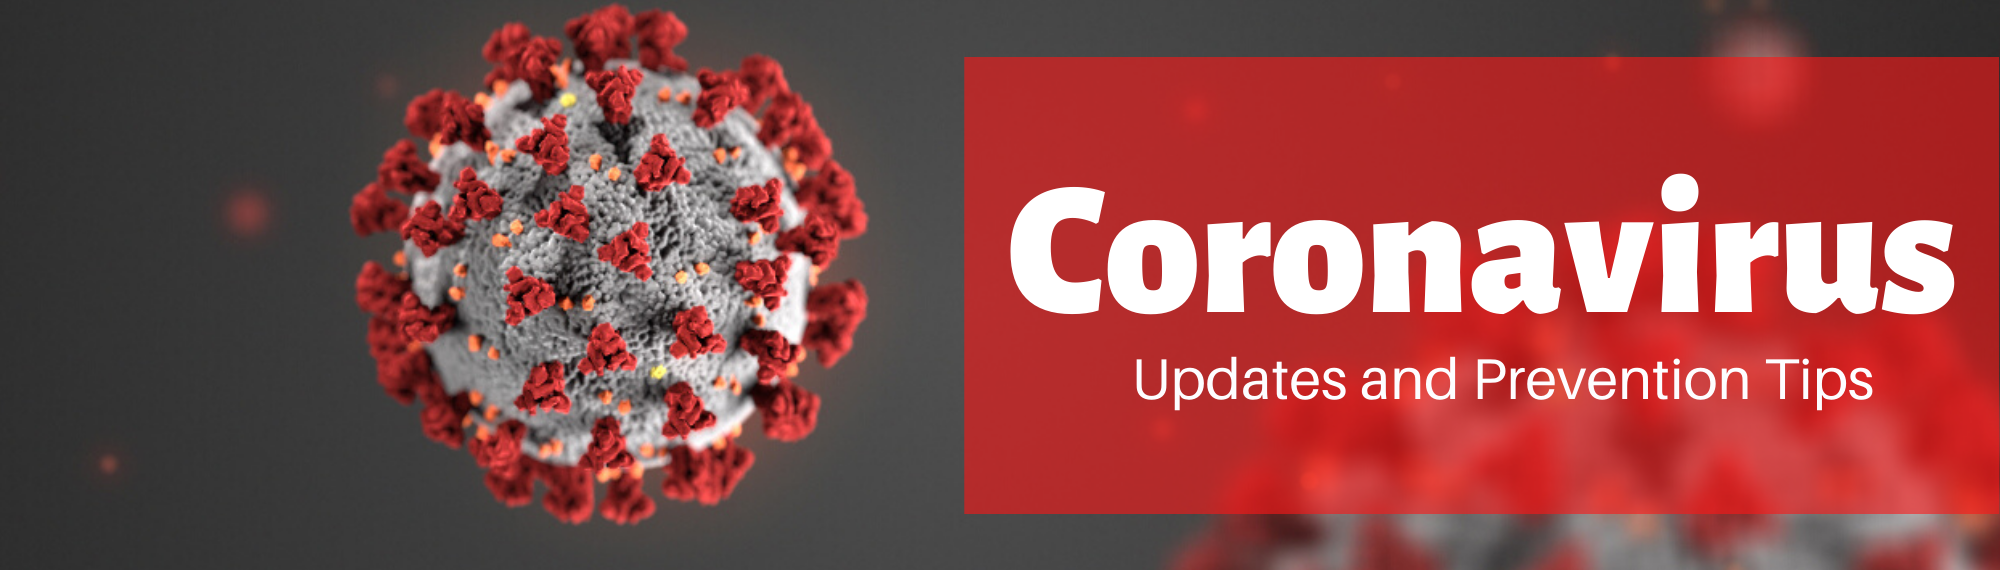 Coronavirus Update and Prevention Tips